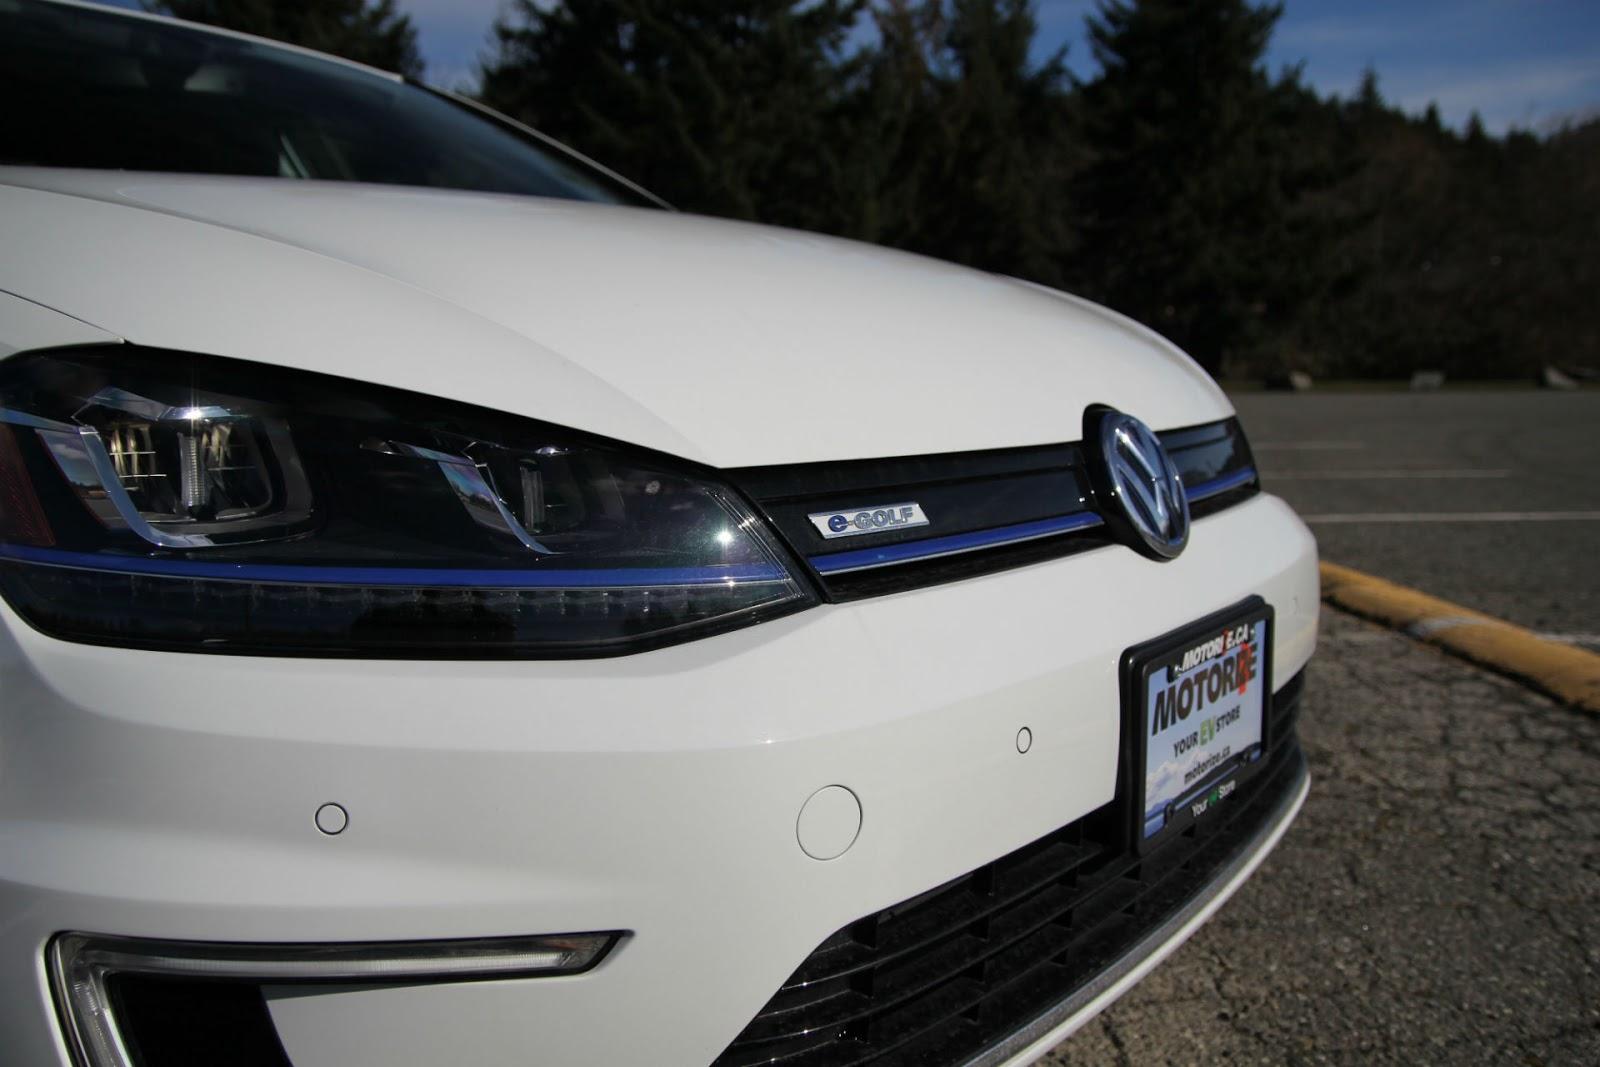 ... Volkswagen E Golf Is A Full Battery Electric Vehicle (BEV) Which Was  Available For Purchase In Seven US States That Participate In The Zero  Emissions ...